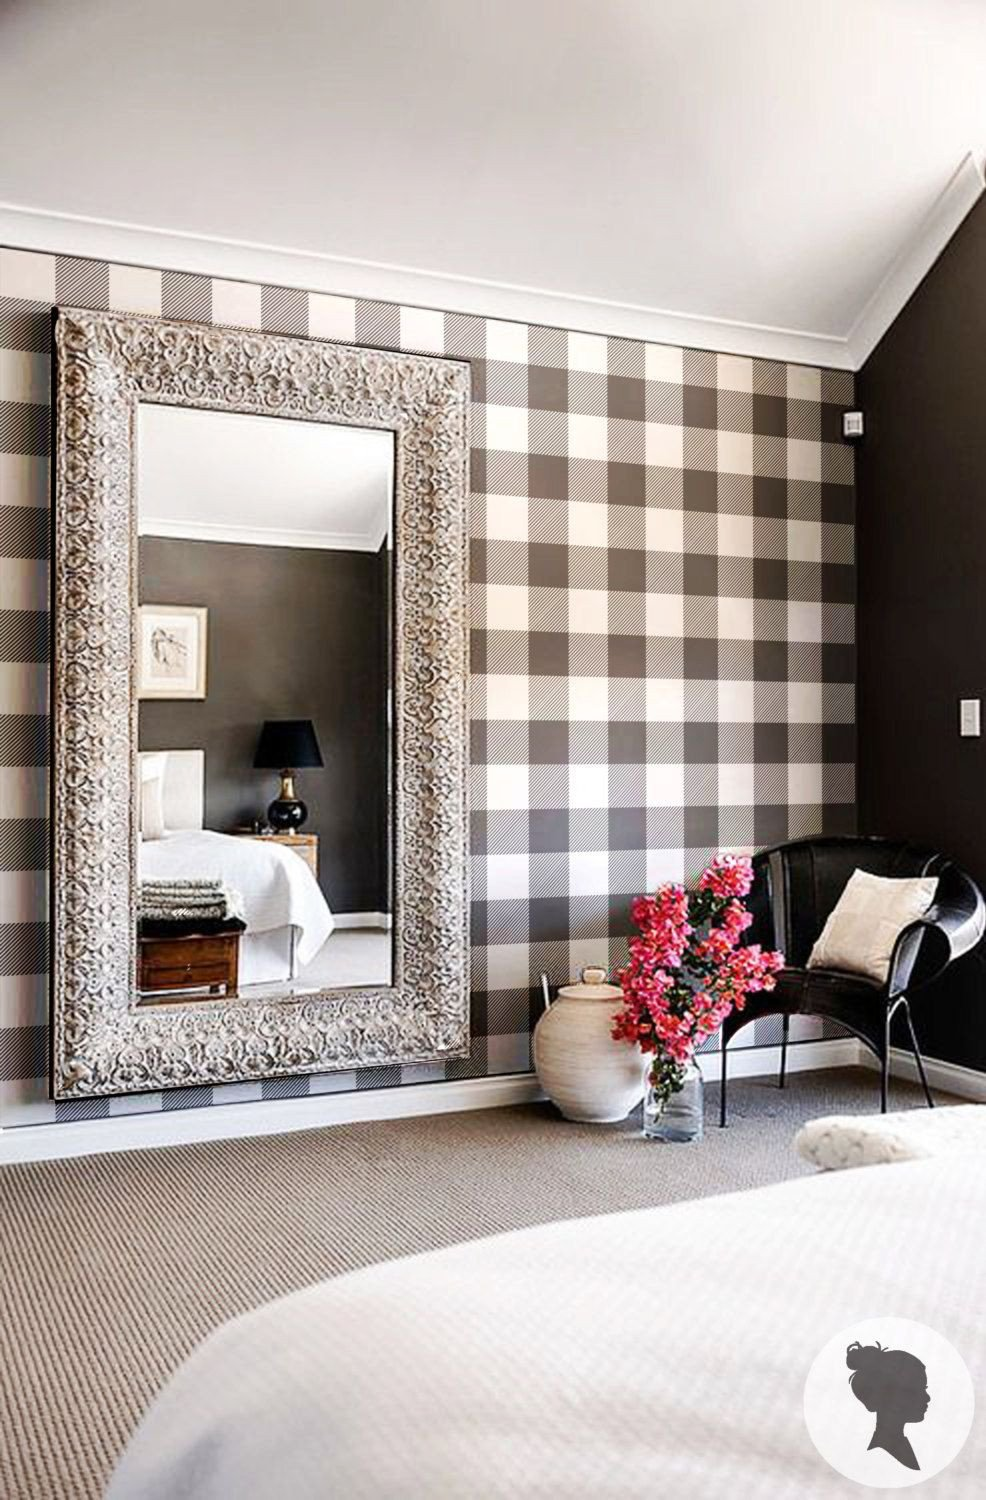 Wall Mirror for Bedroom Fresh Gingham Removable Wallpaper Buffalo Check Plaid Self